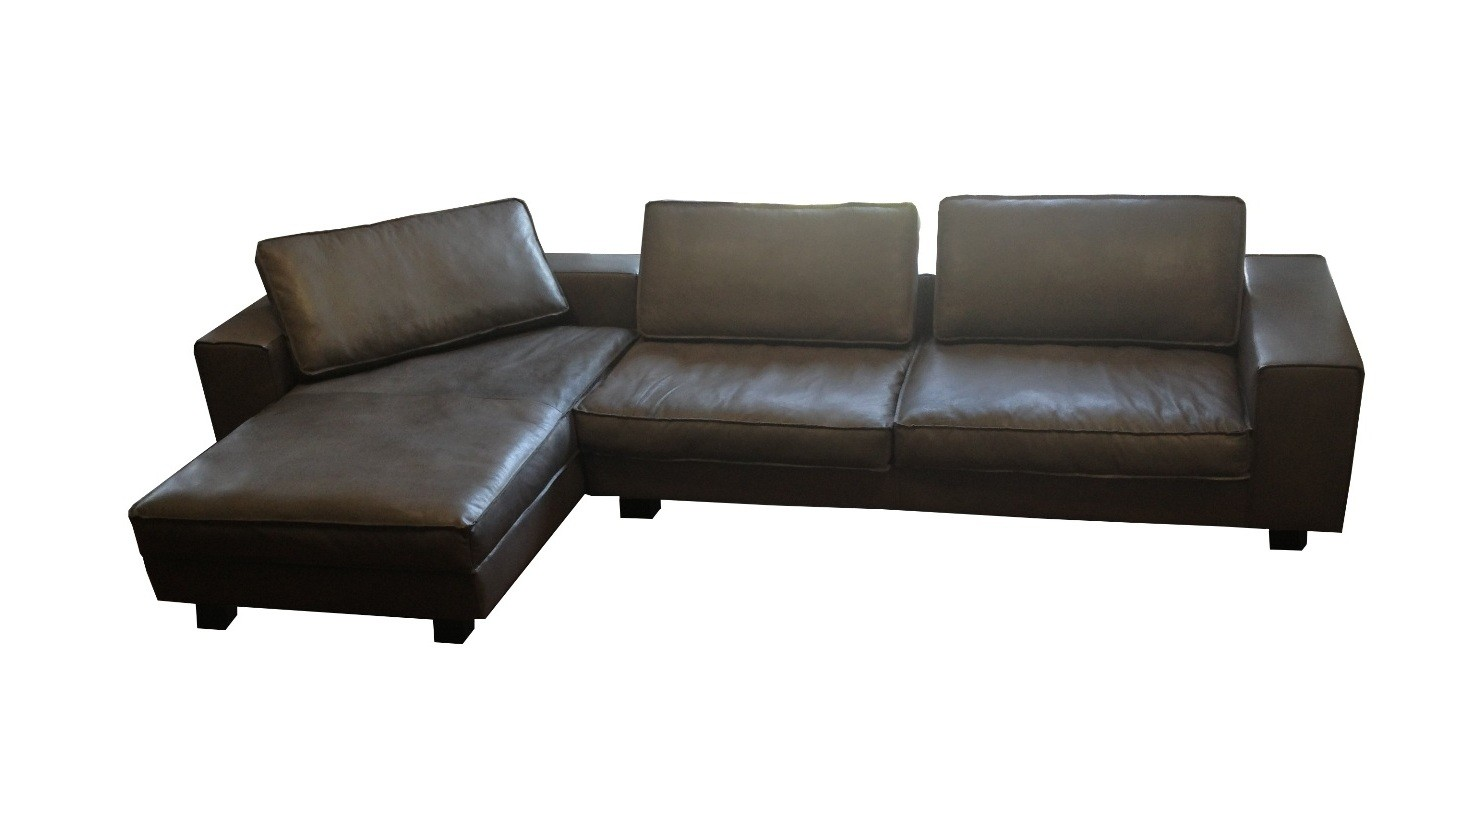 tommy m ecksofa erstklassiges sofa hier klicken jenverso. Black Bedroom Furniture Sets. Home Design Ideas